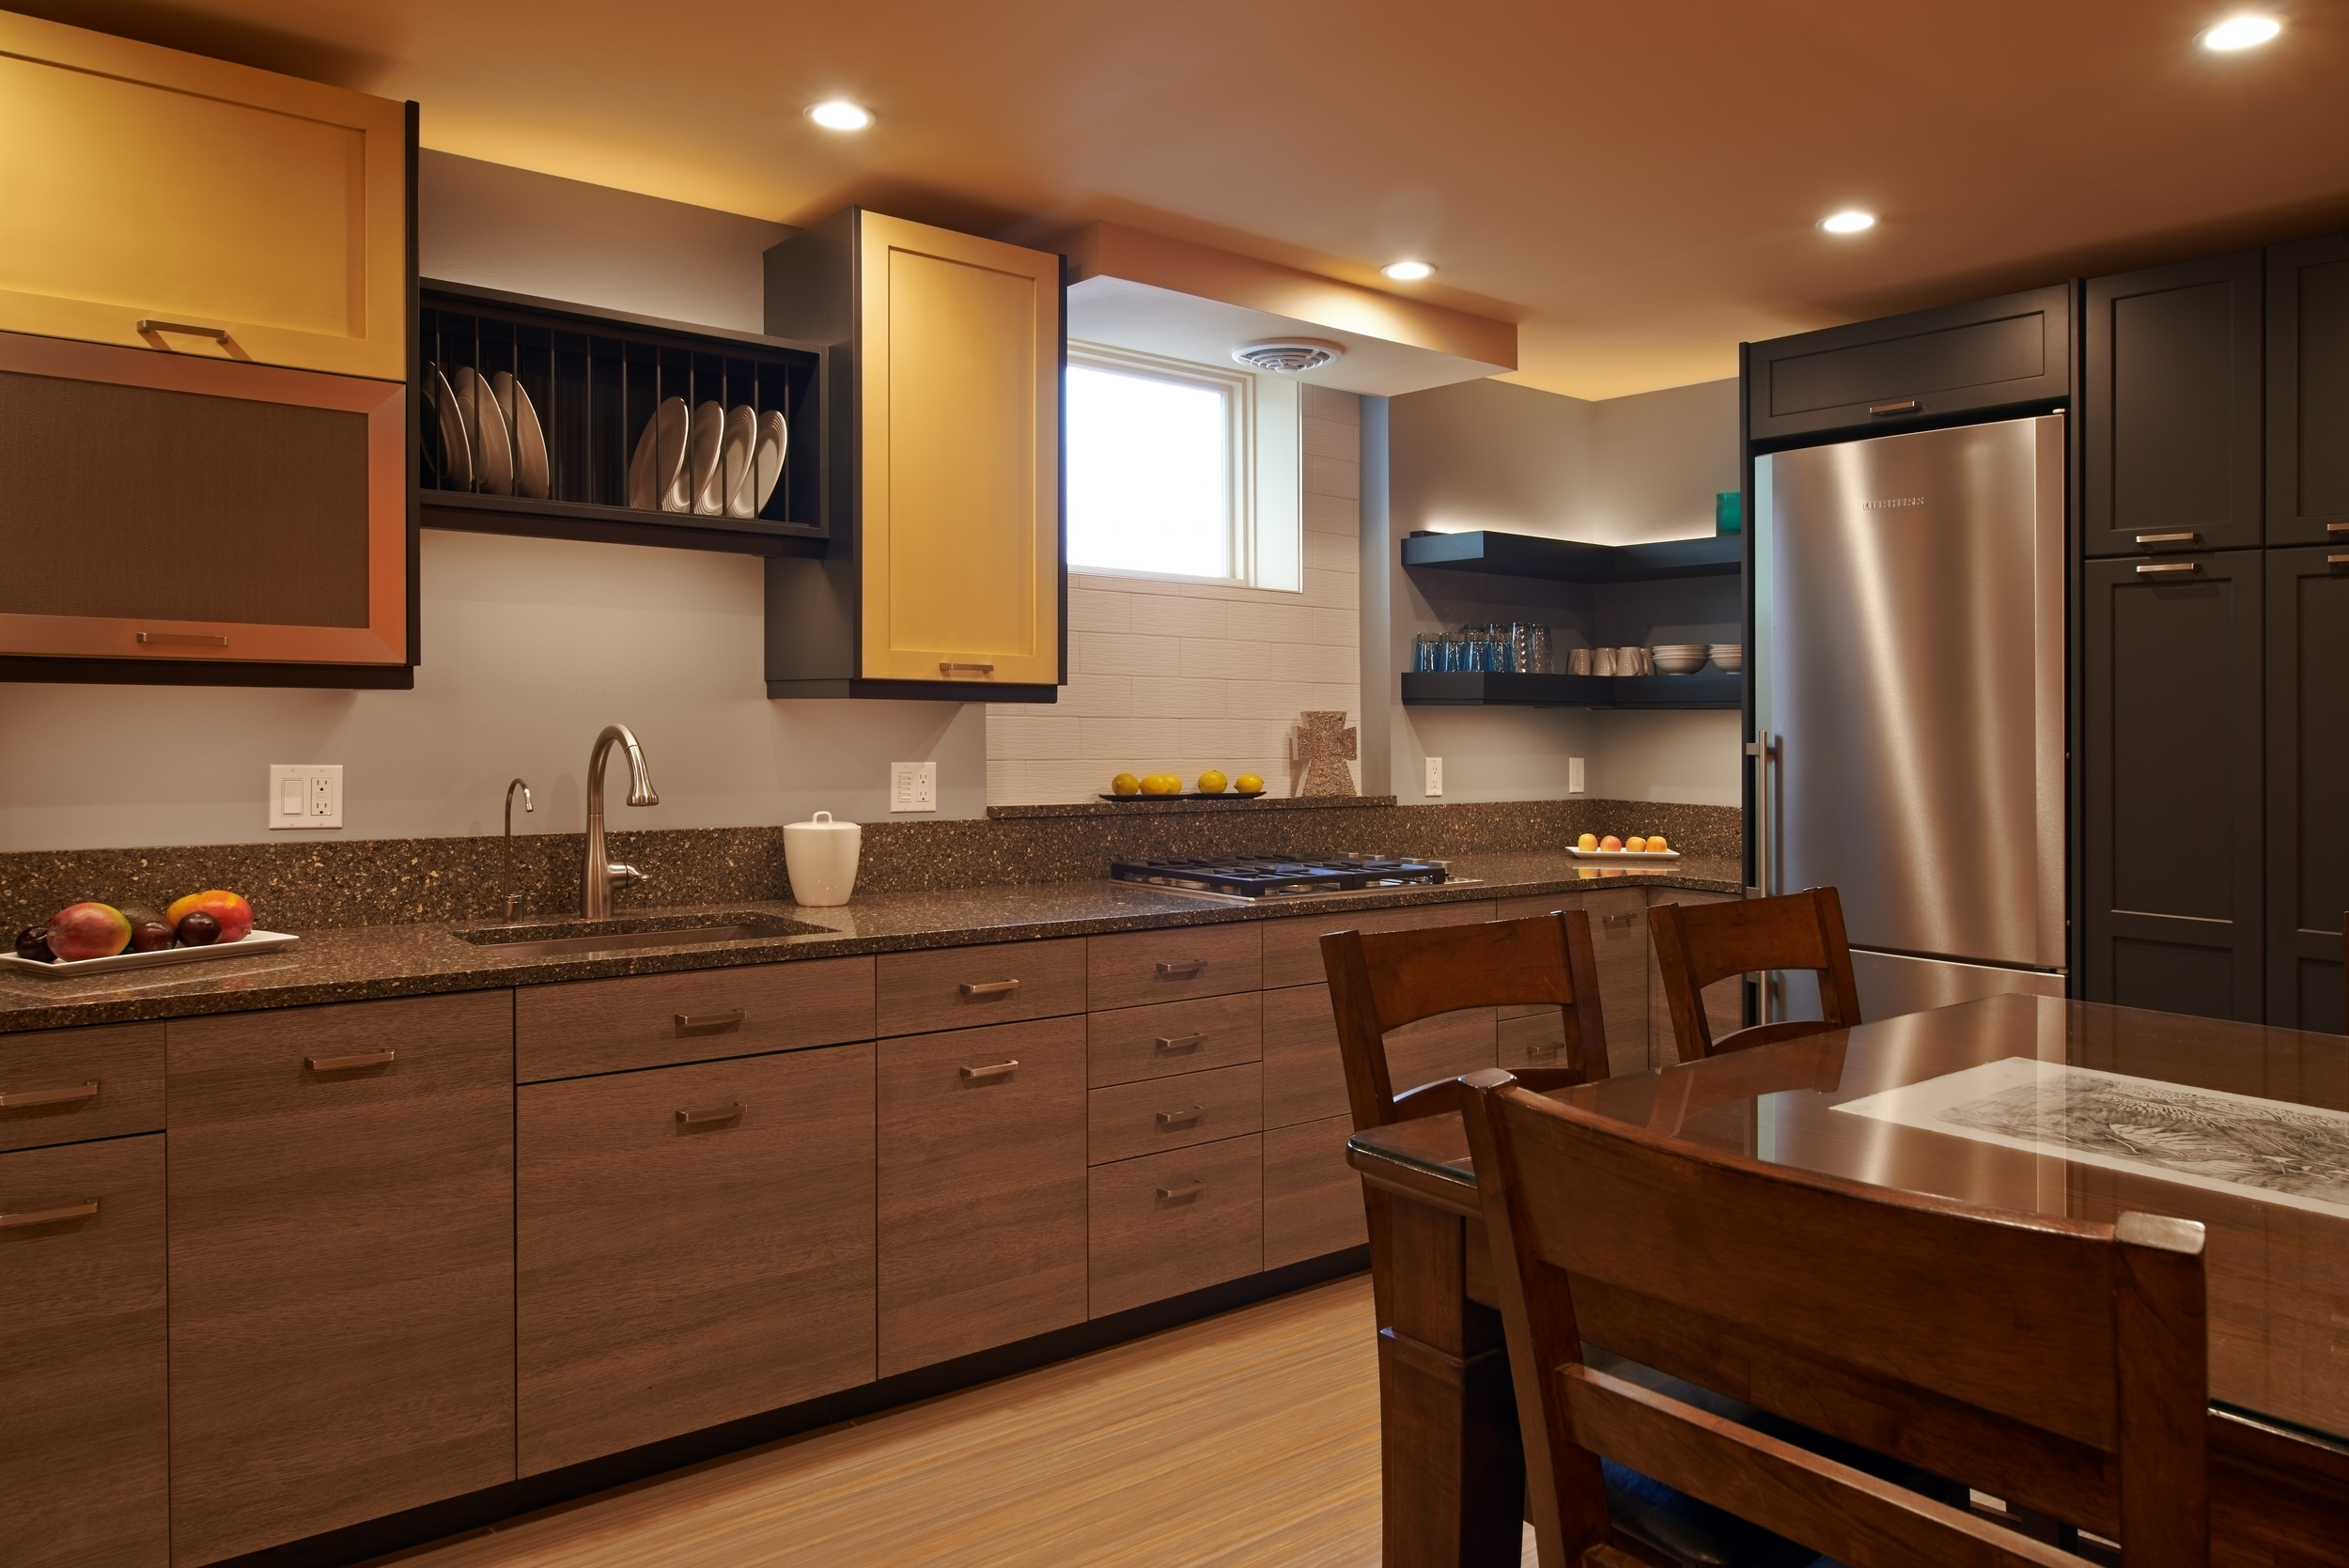 CRD Design Build - ADU kitchen.jpg